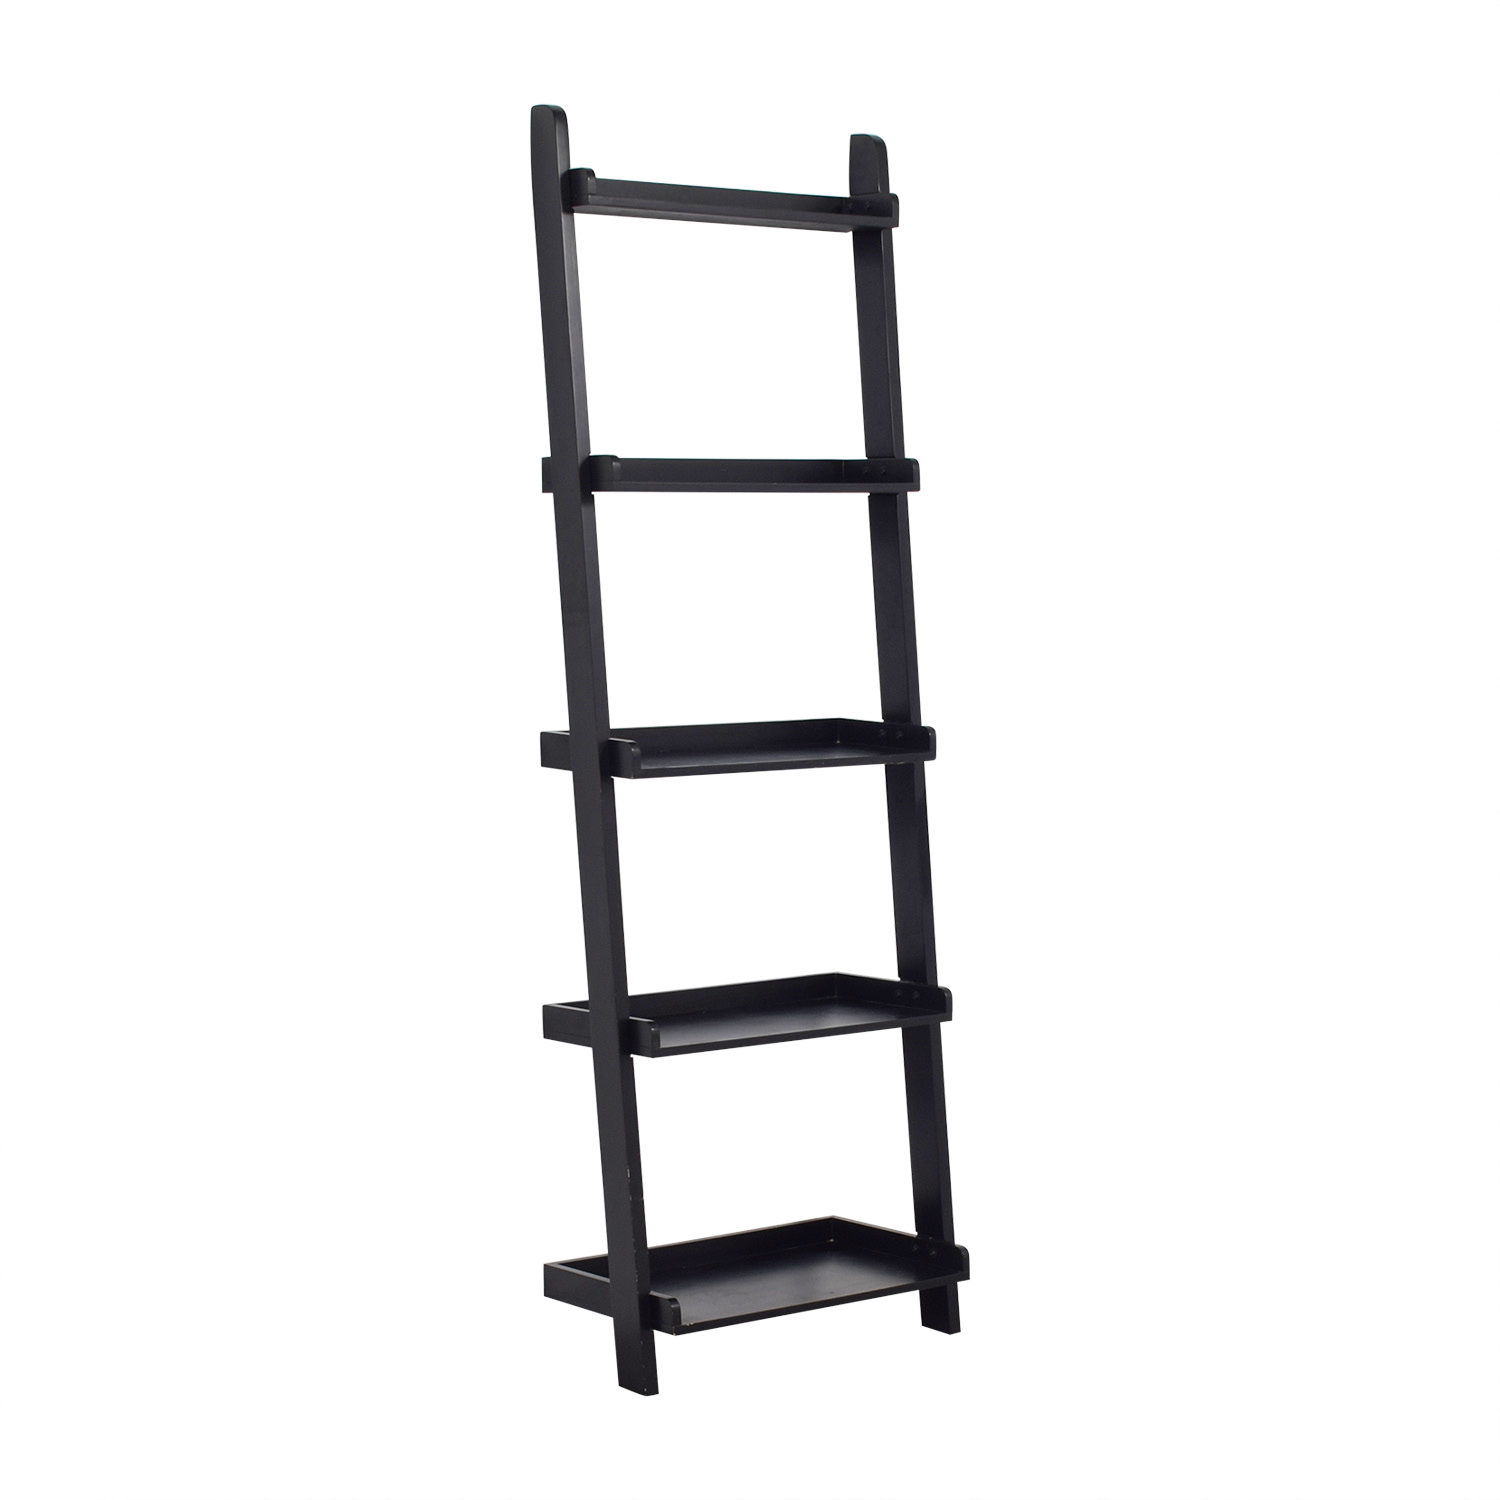 Crate and Barrel Crate & Barrel Black Leaning Bookcase used